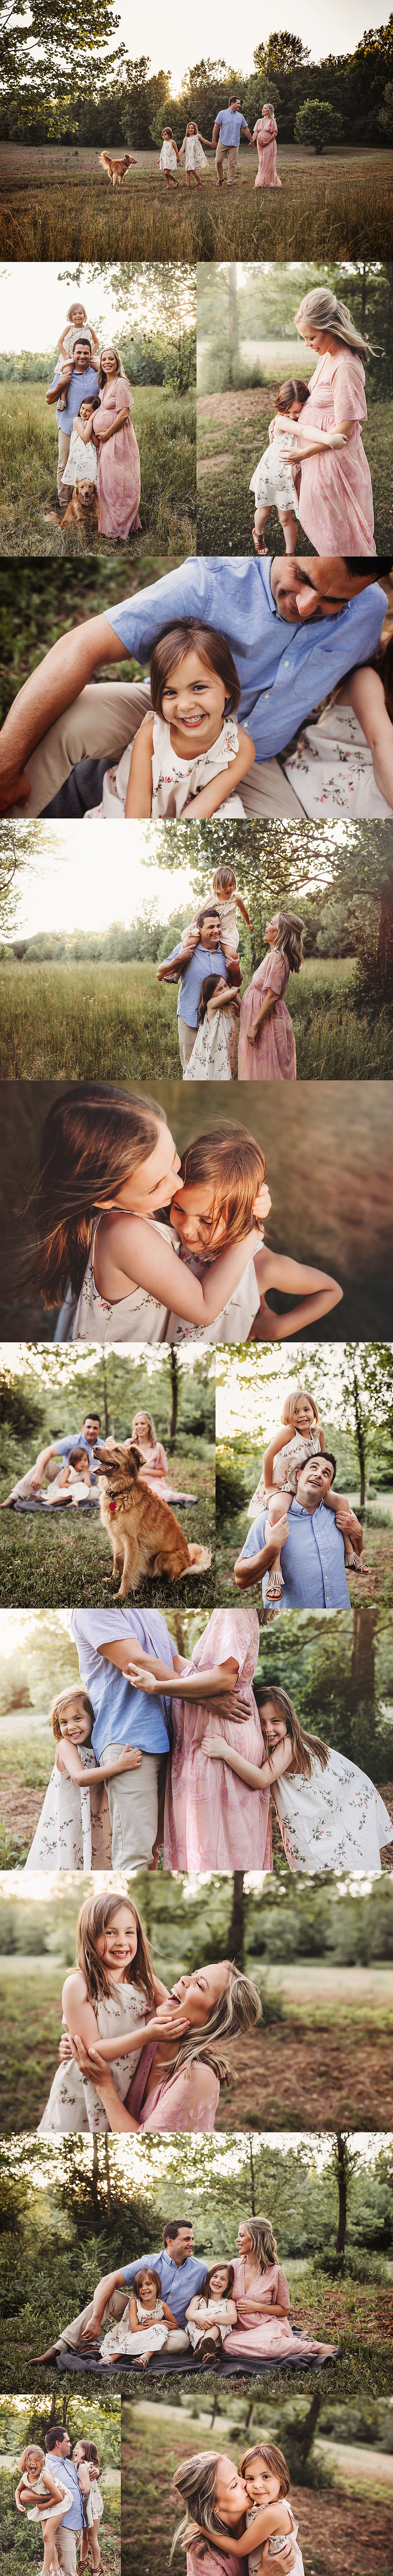 Indianapolis Family lifestyle Photographer, Alex Morris Design, Lifestyle Photography